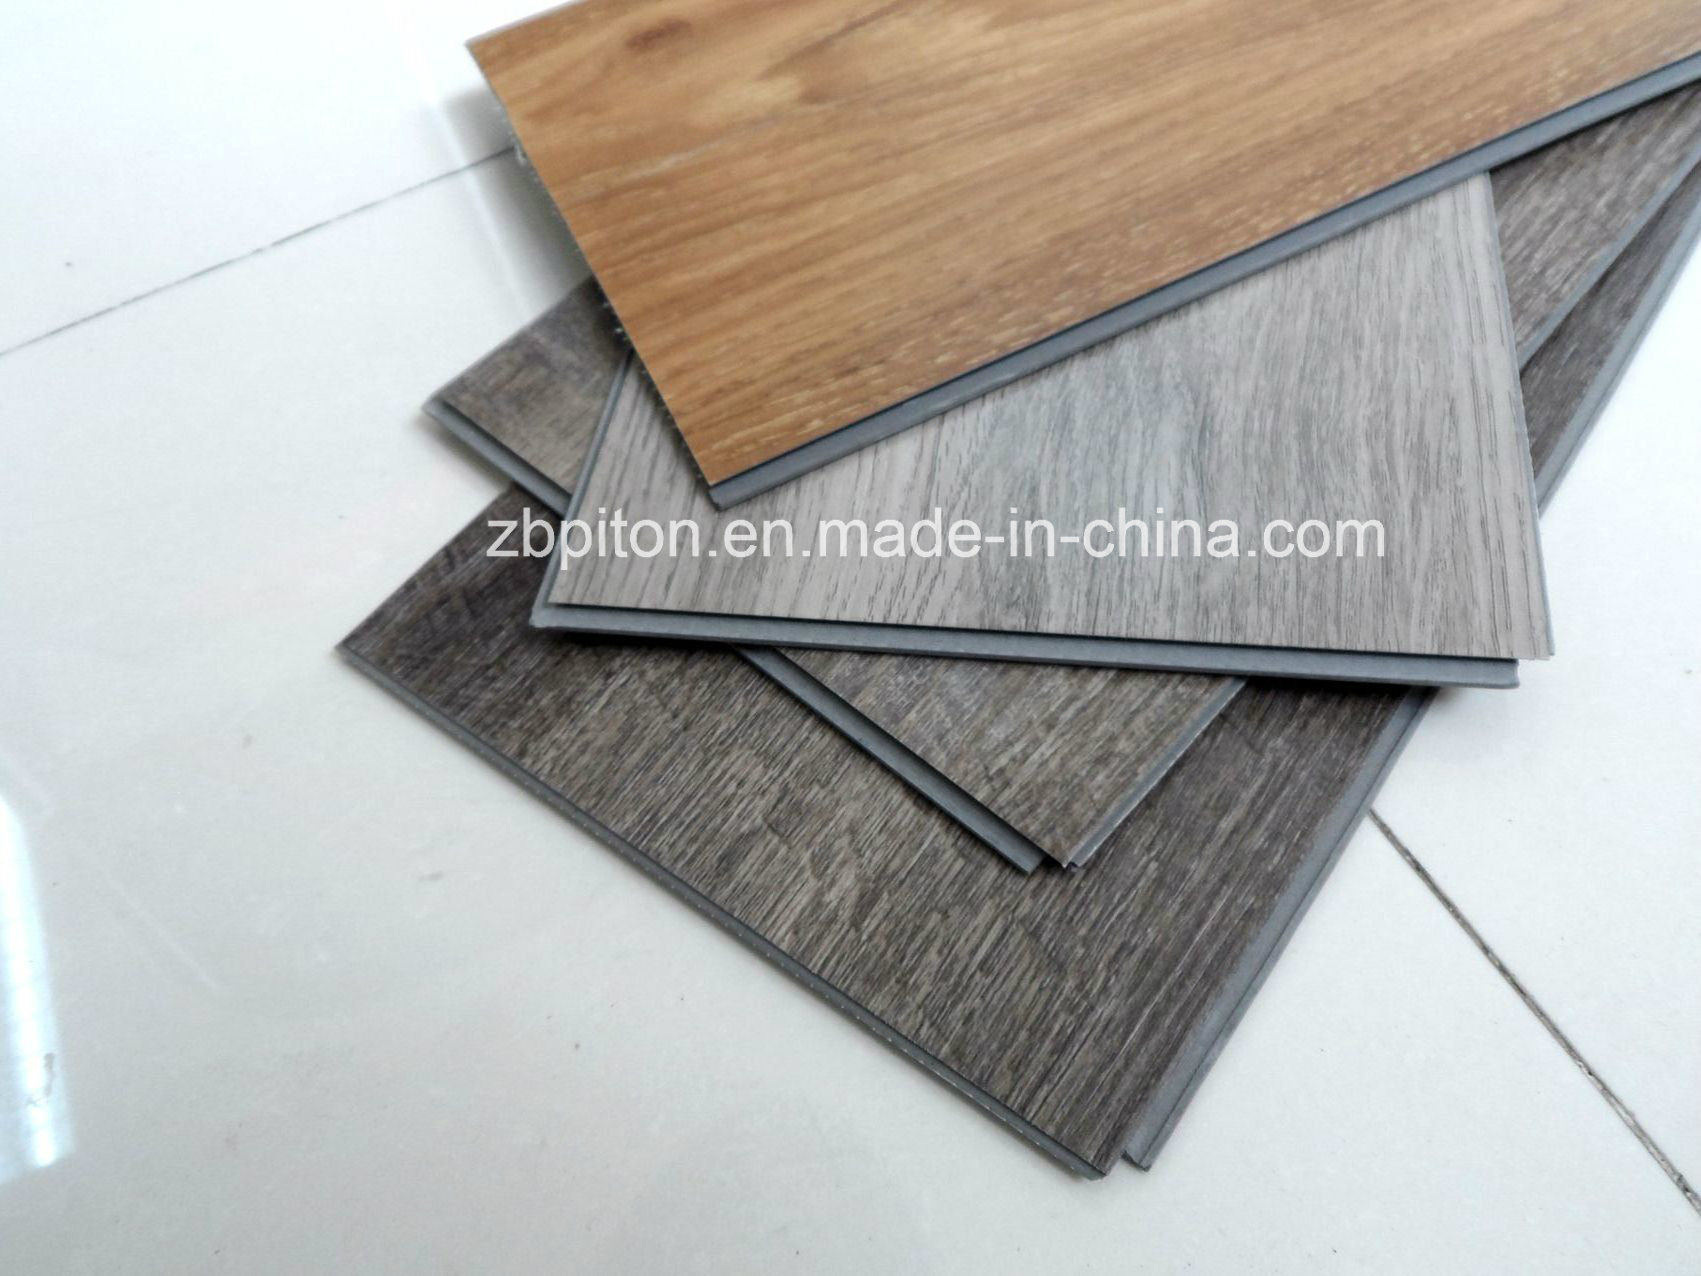 vinyl interlocking plank flooring page 2 home flooring ideas. Black Bedroom Furniture Sets. Home Design Ideas